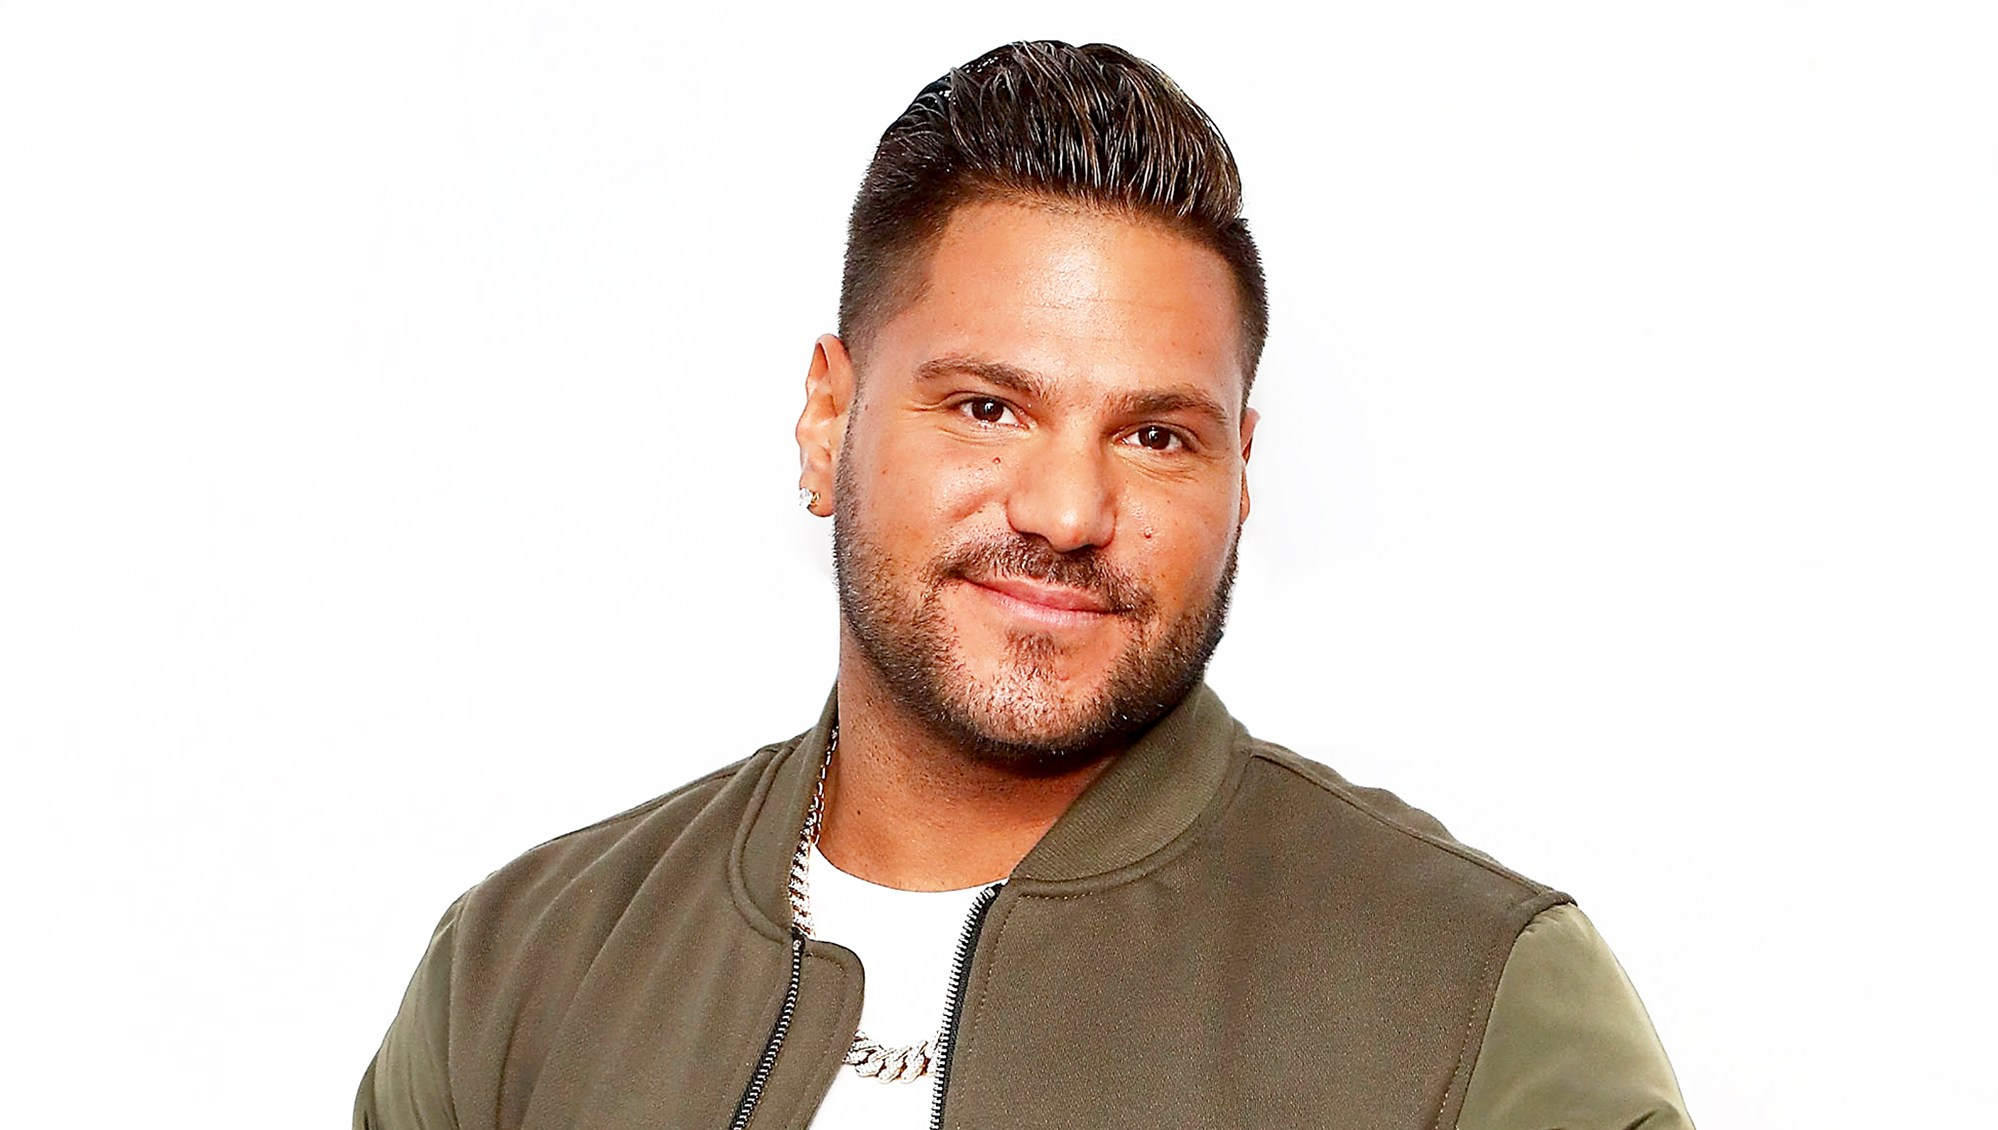 Ronnie Ortiz-Magro visits the SiriusXM Studios in New York City.